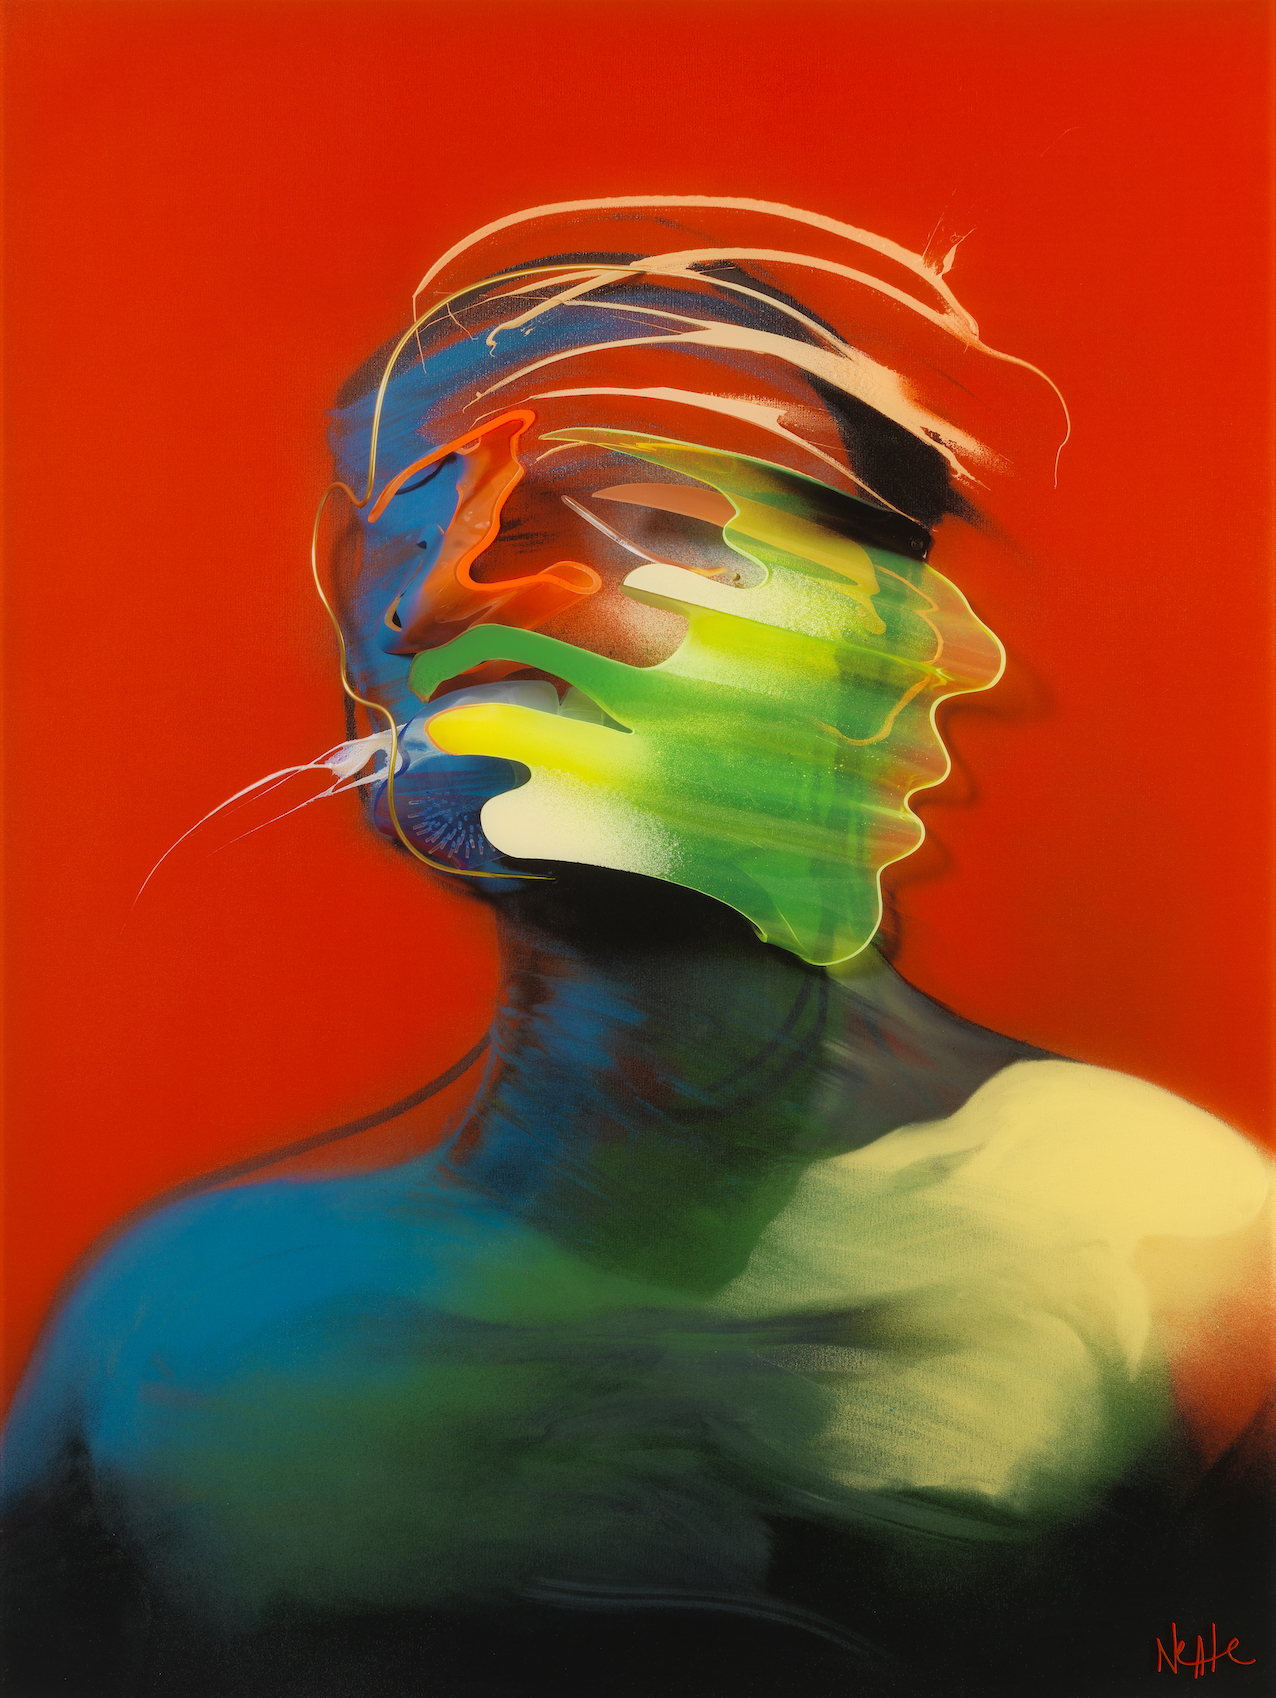 http://elmslesters.co.uk/wp-content/uploads/2016/08/adam-neate_Red-Portrait-with-Movement_elmslesters.jpg